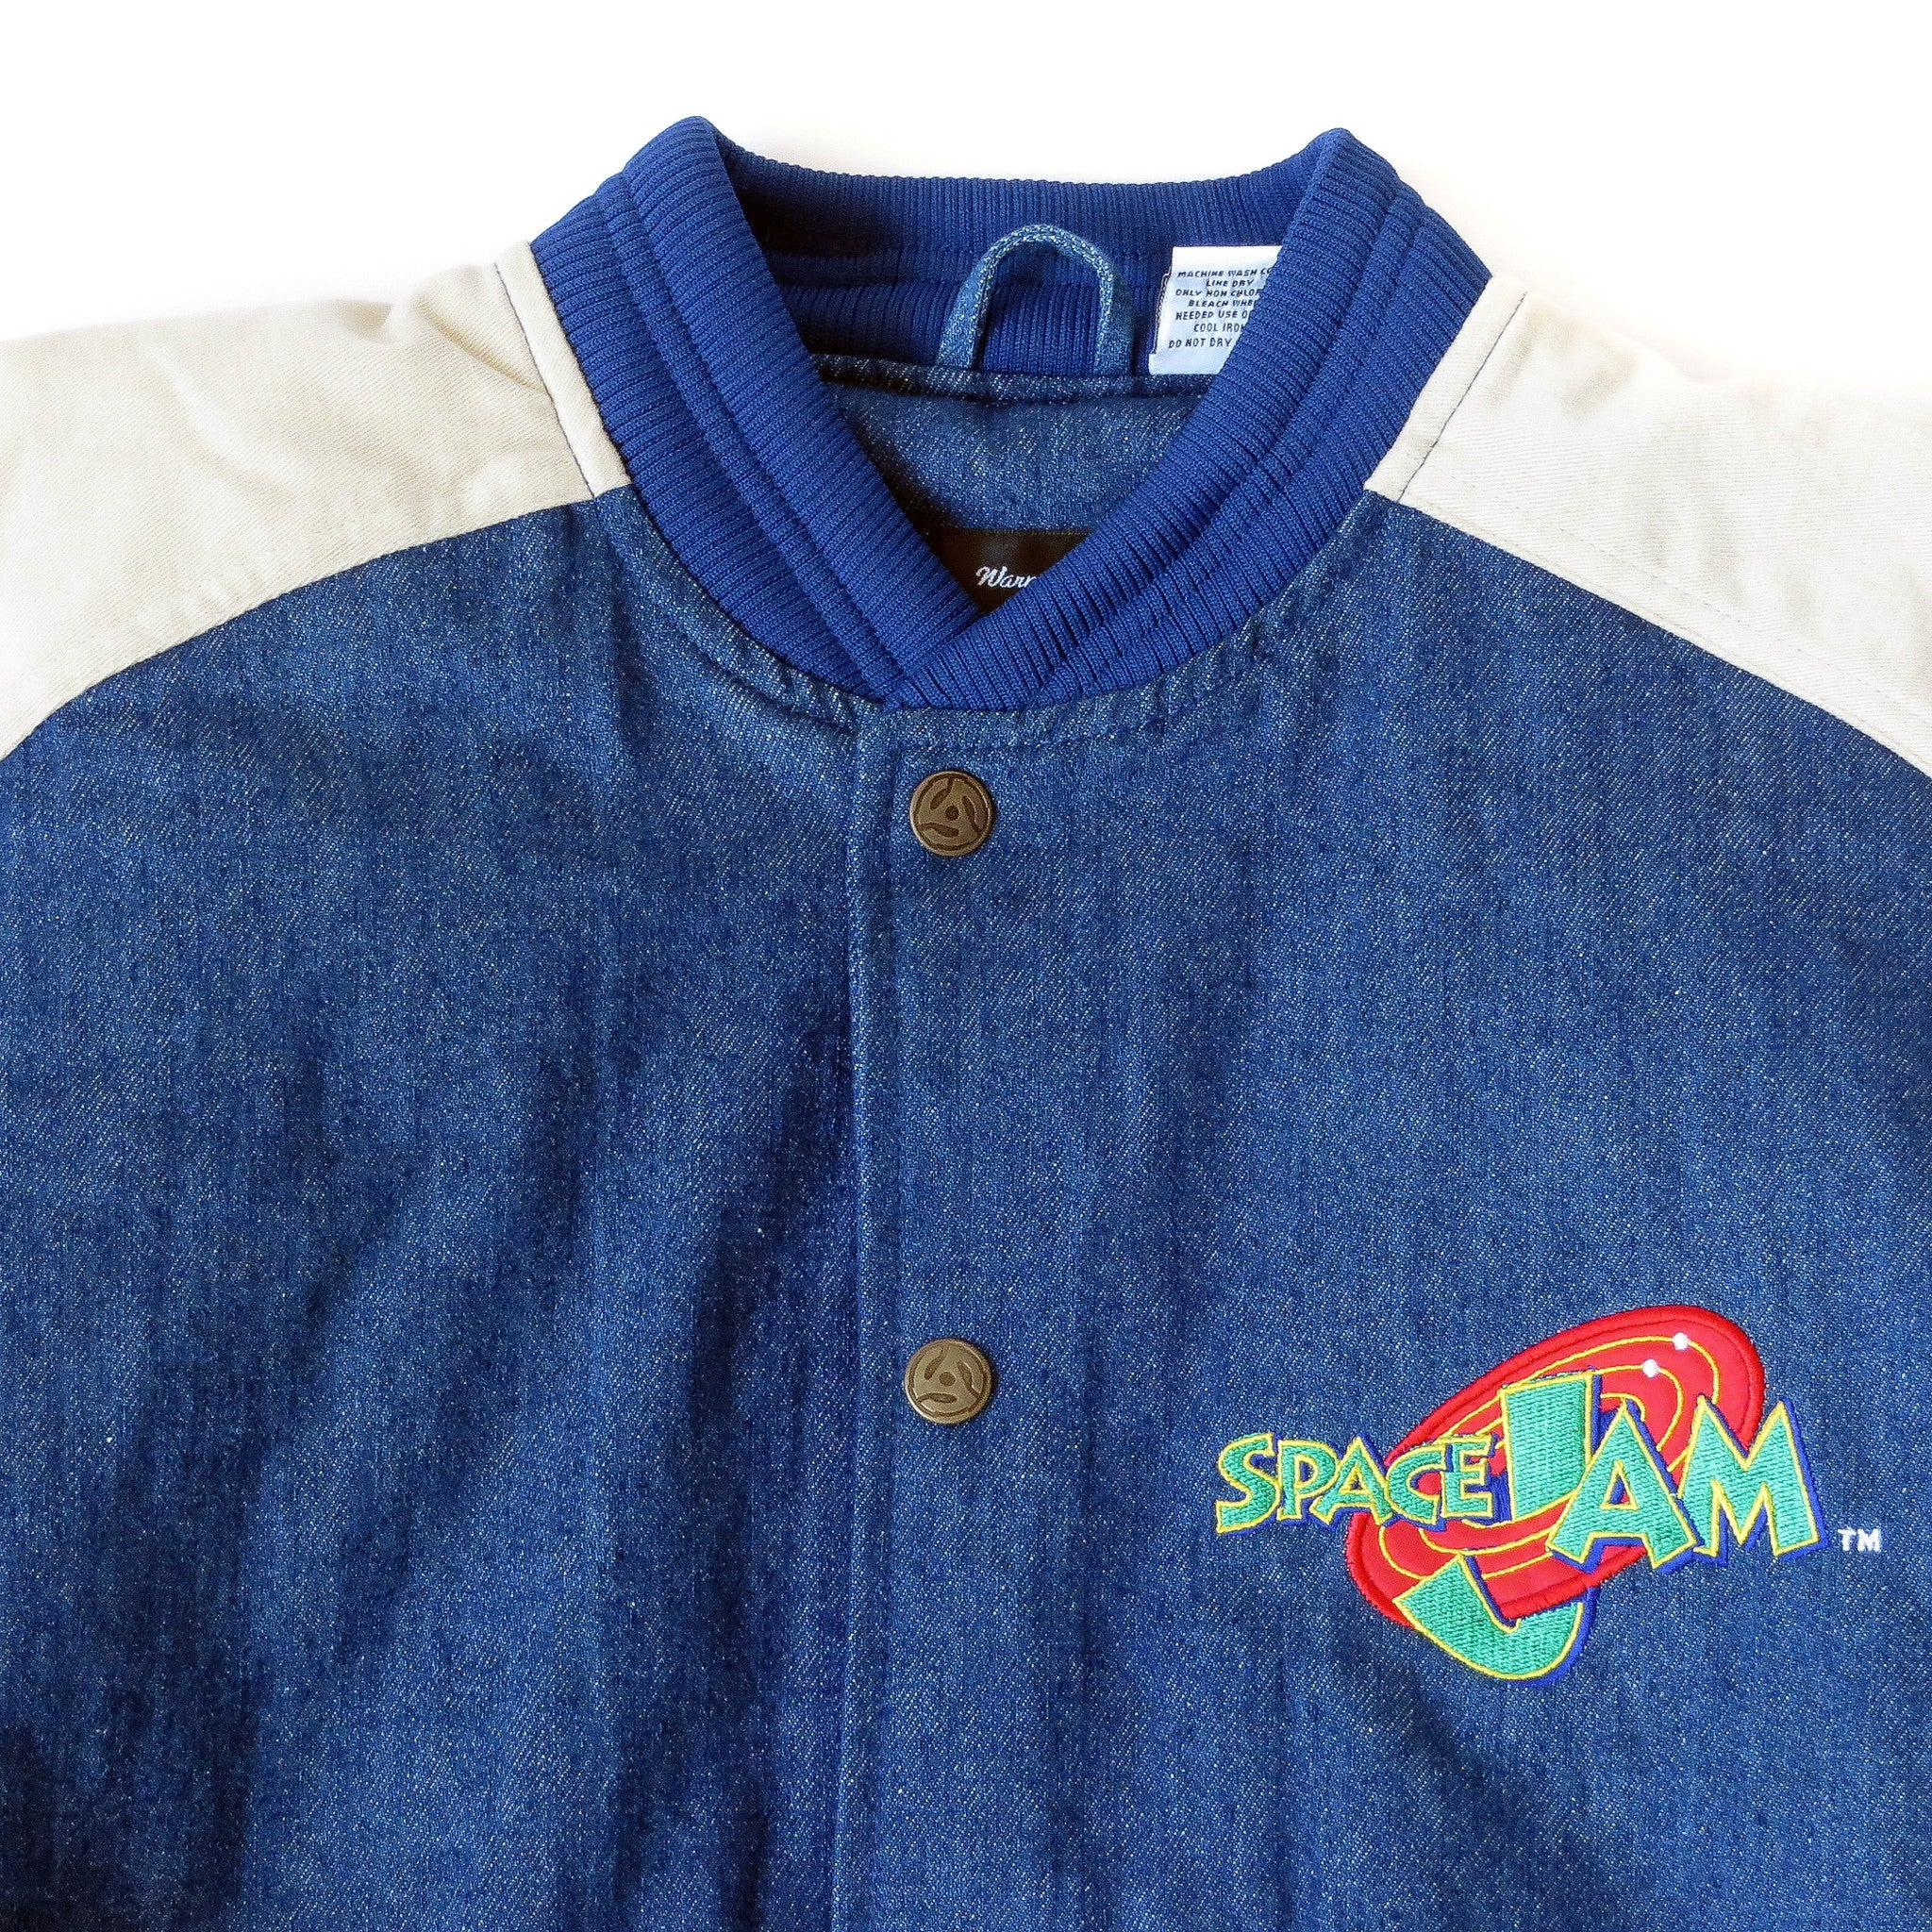 Vintage Deadstock Space Jam Jacket Sz XS (Youth XL)